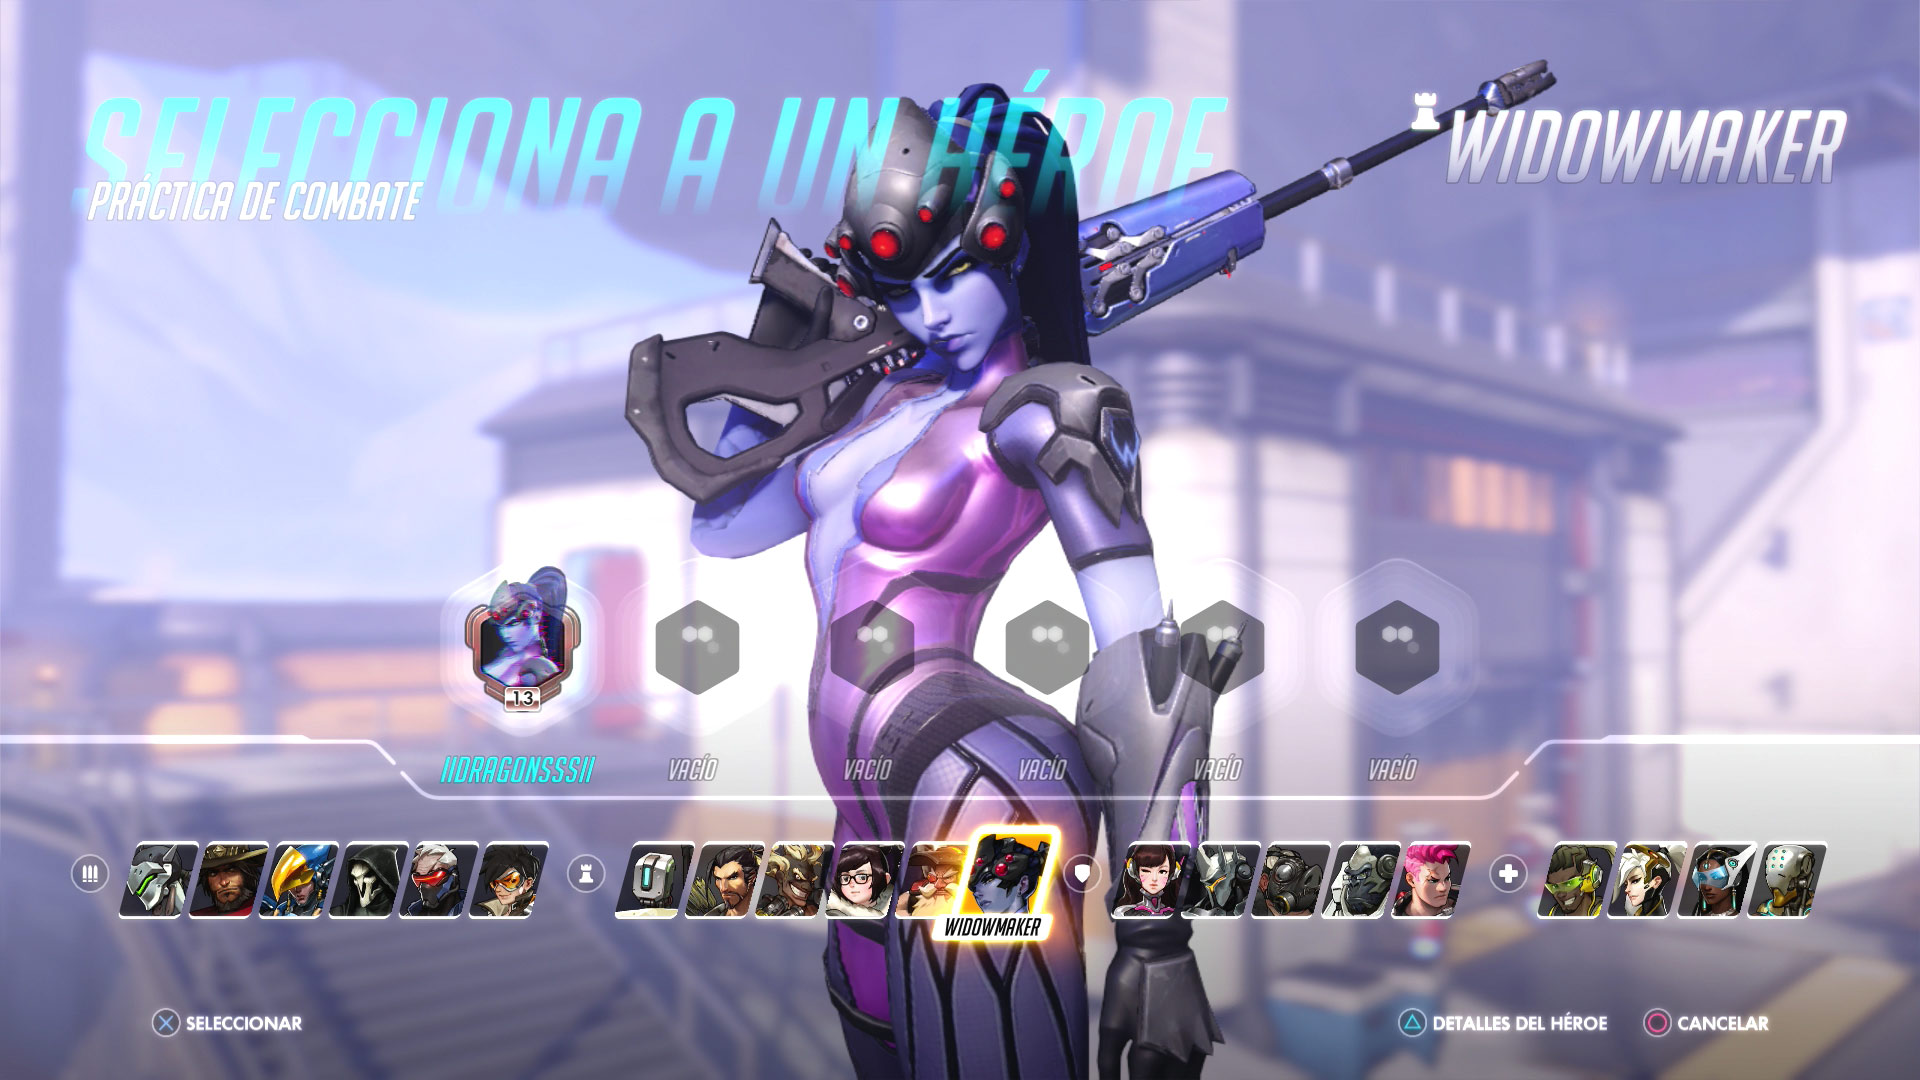 Personajes de Overwatch - Widowmaker